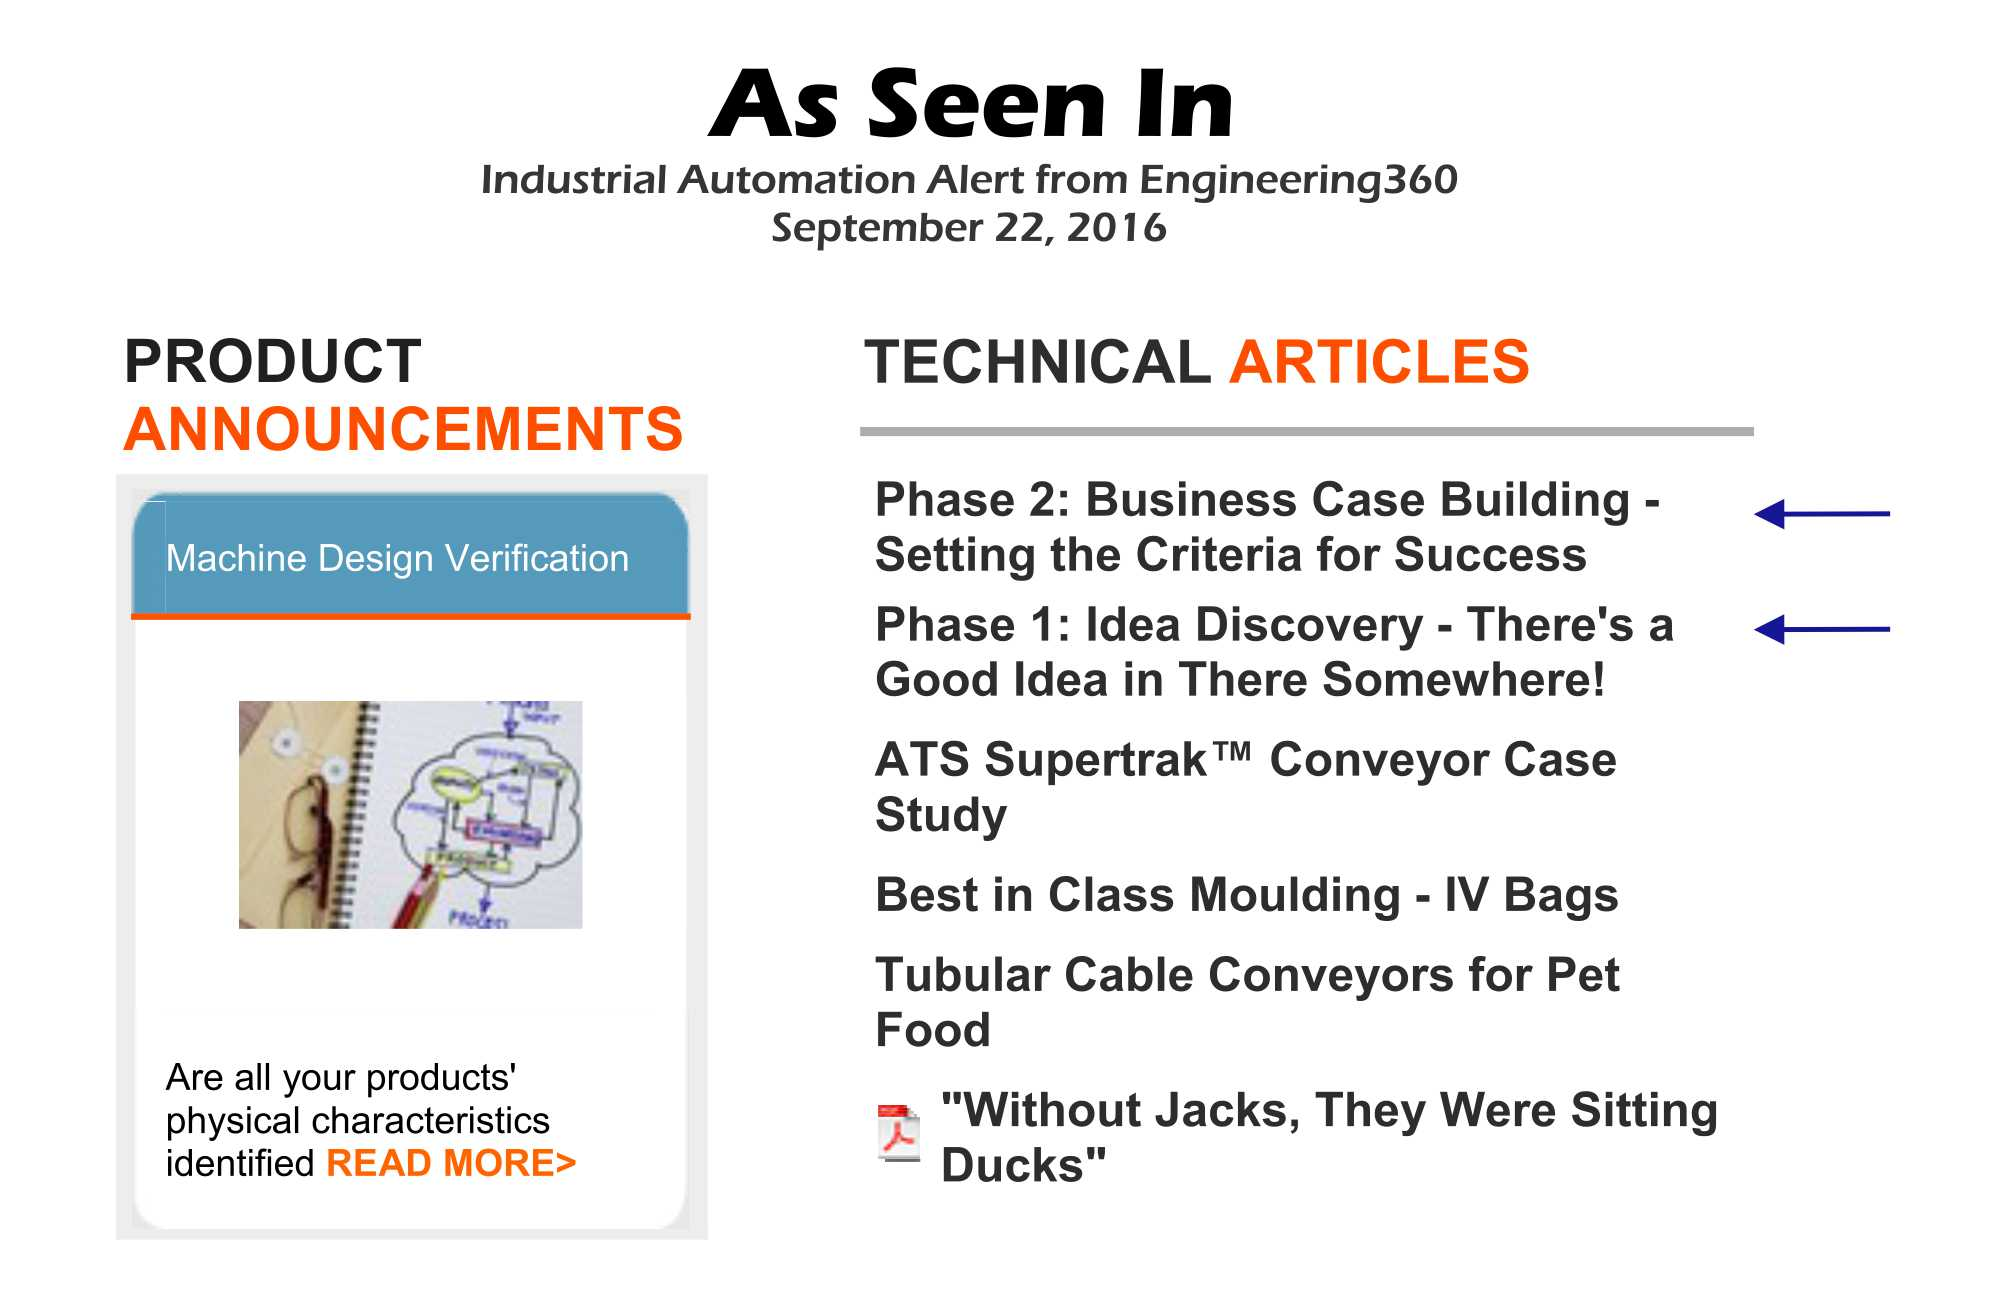 As Seen In: Engineering360 Industrial Automation Product Alert